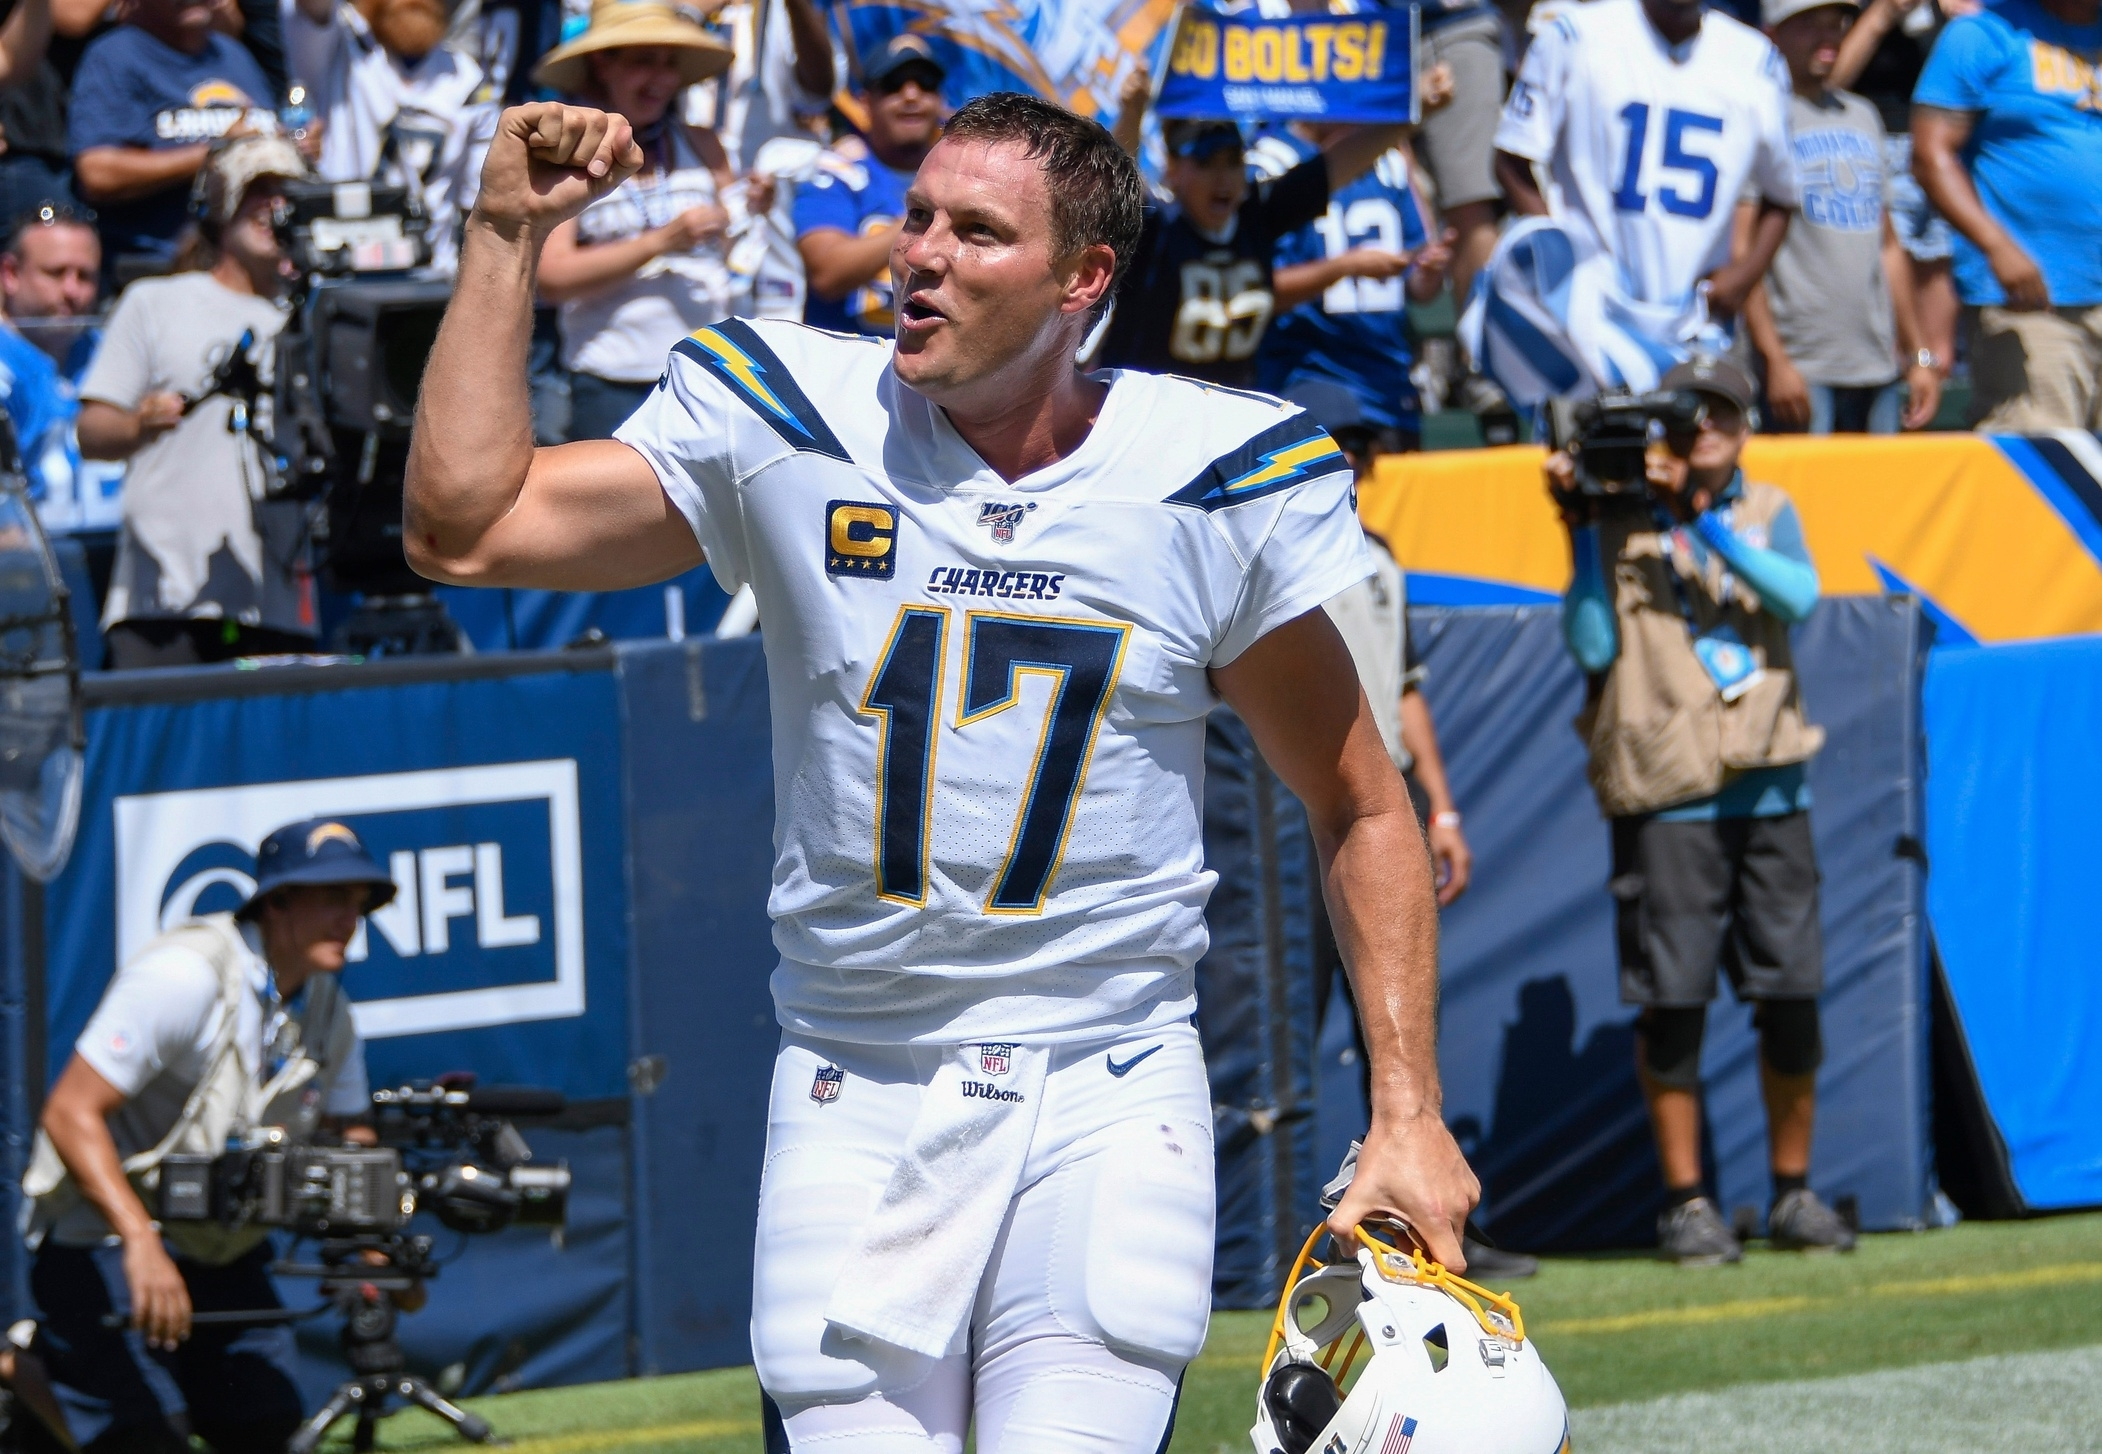 Watch: Philip Rivers Greeting Some Special Visitors Before Game with regard to Philip Rivers Super Bowl